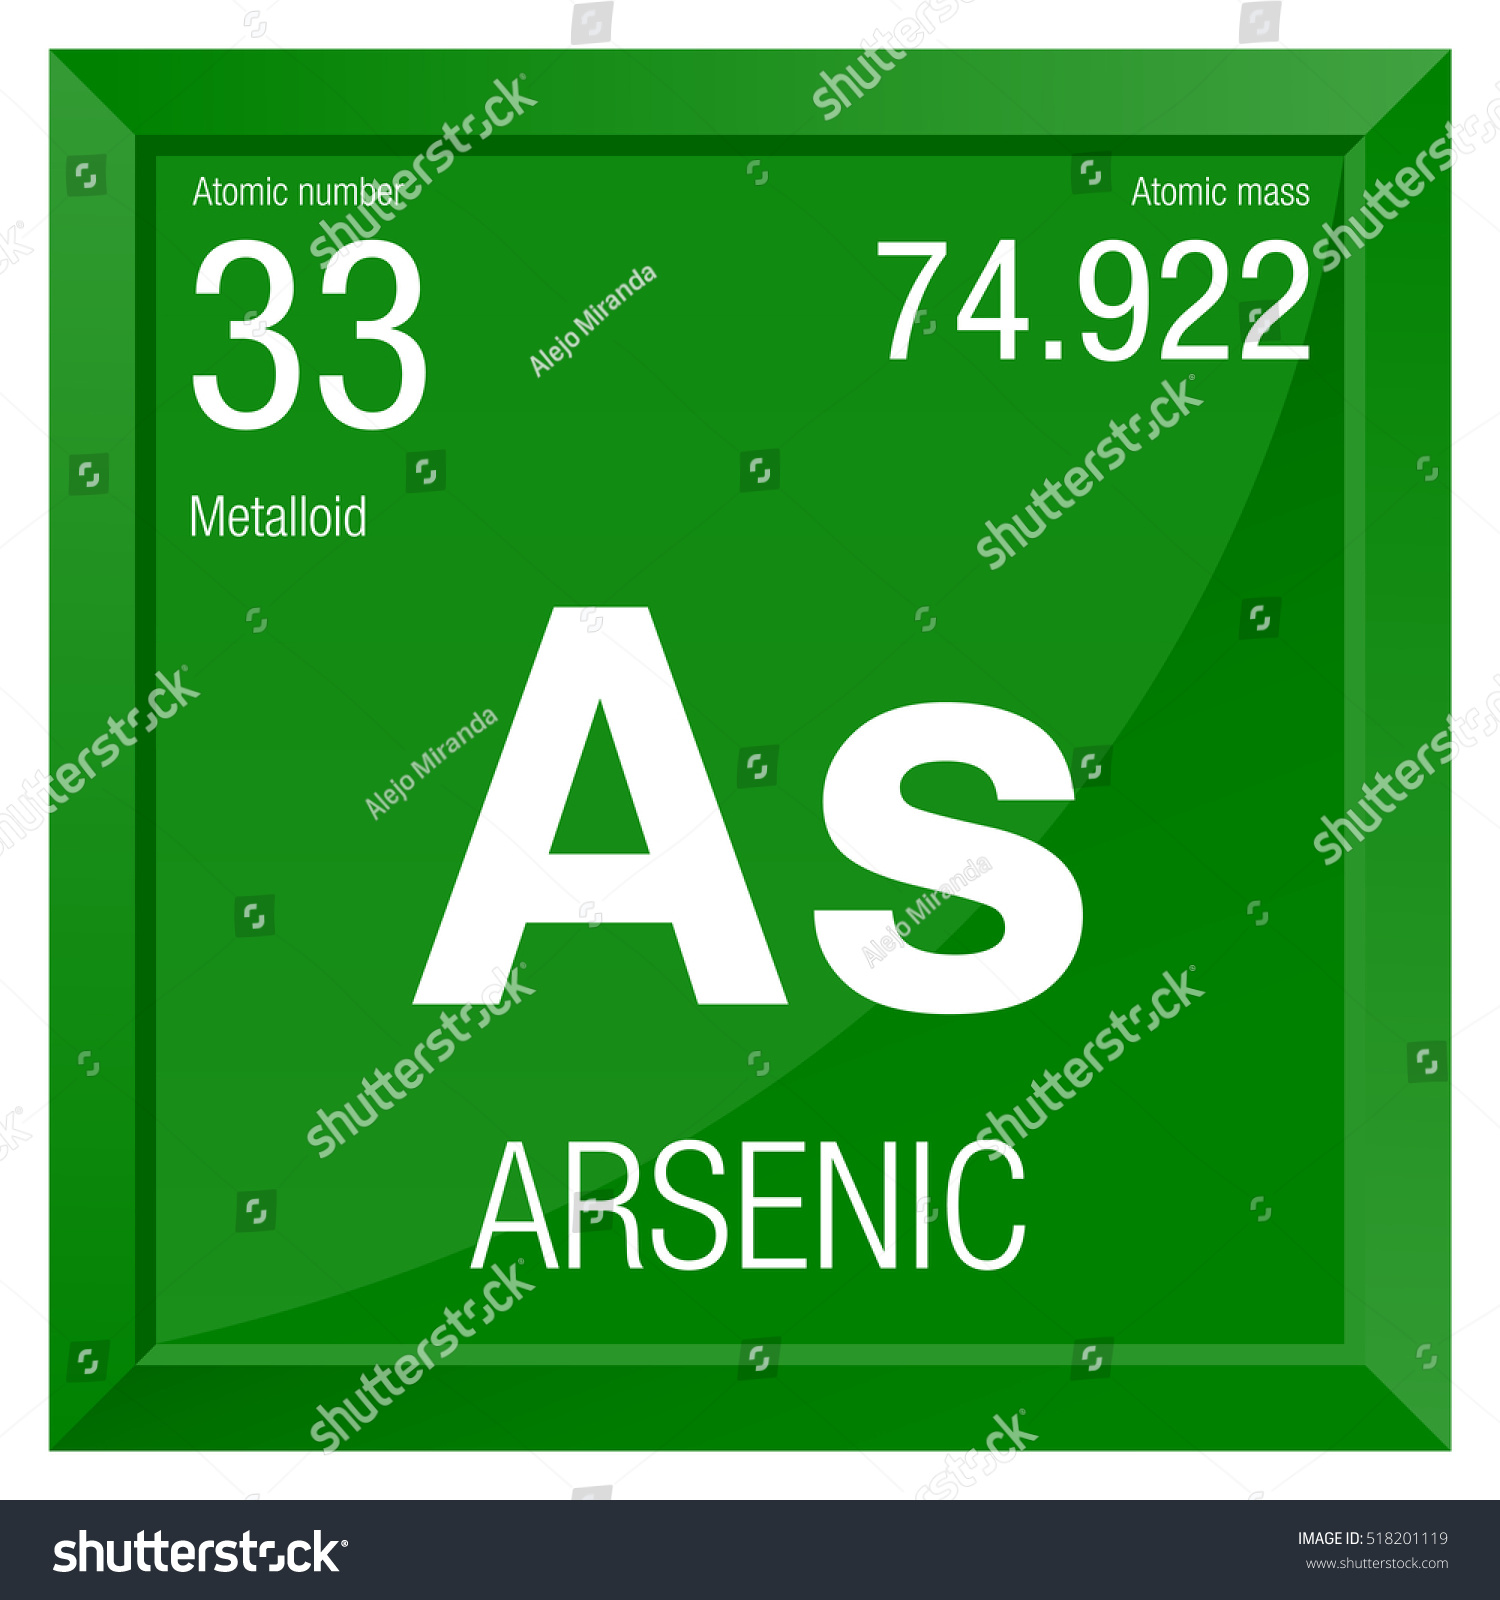 Arsenic symbol element number 33 periodic stock vector 518201119 arsenic symbol element number 33 of the periodic table of the elements chemistry biocorpaavc Image collections